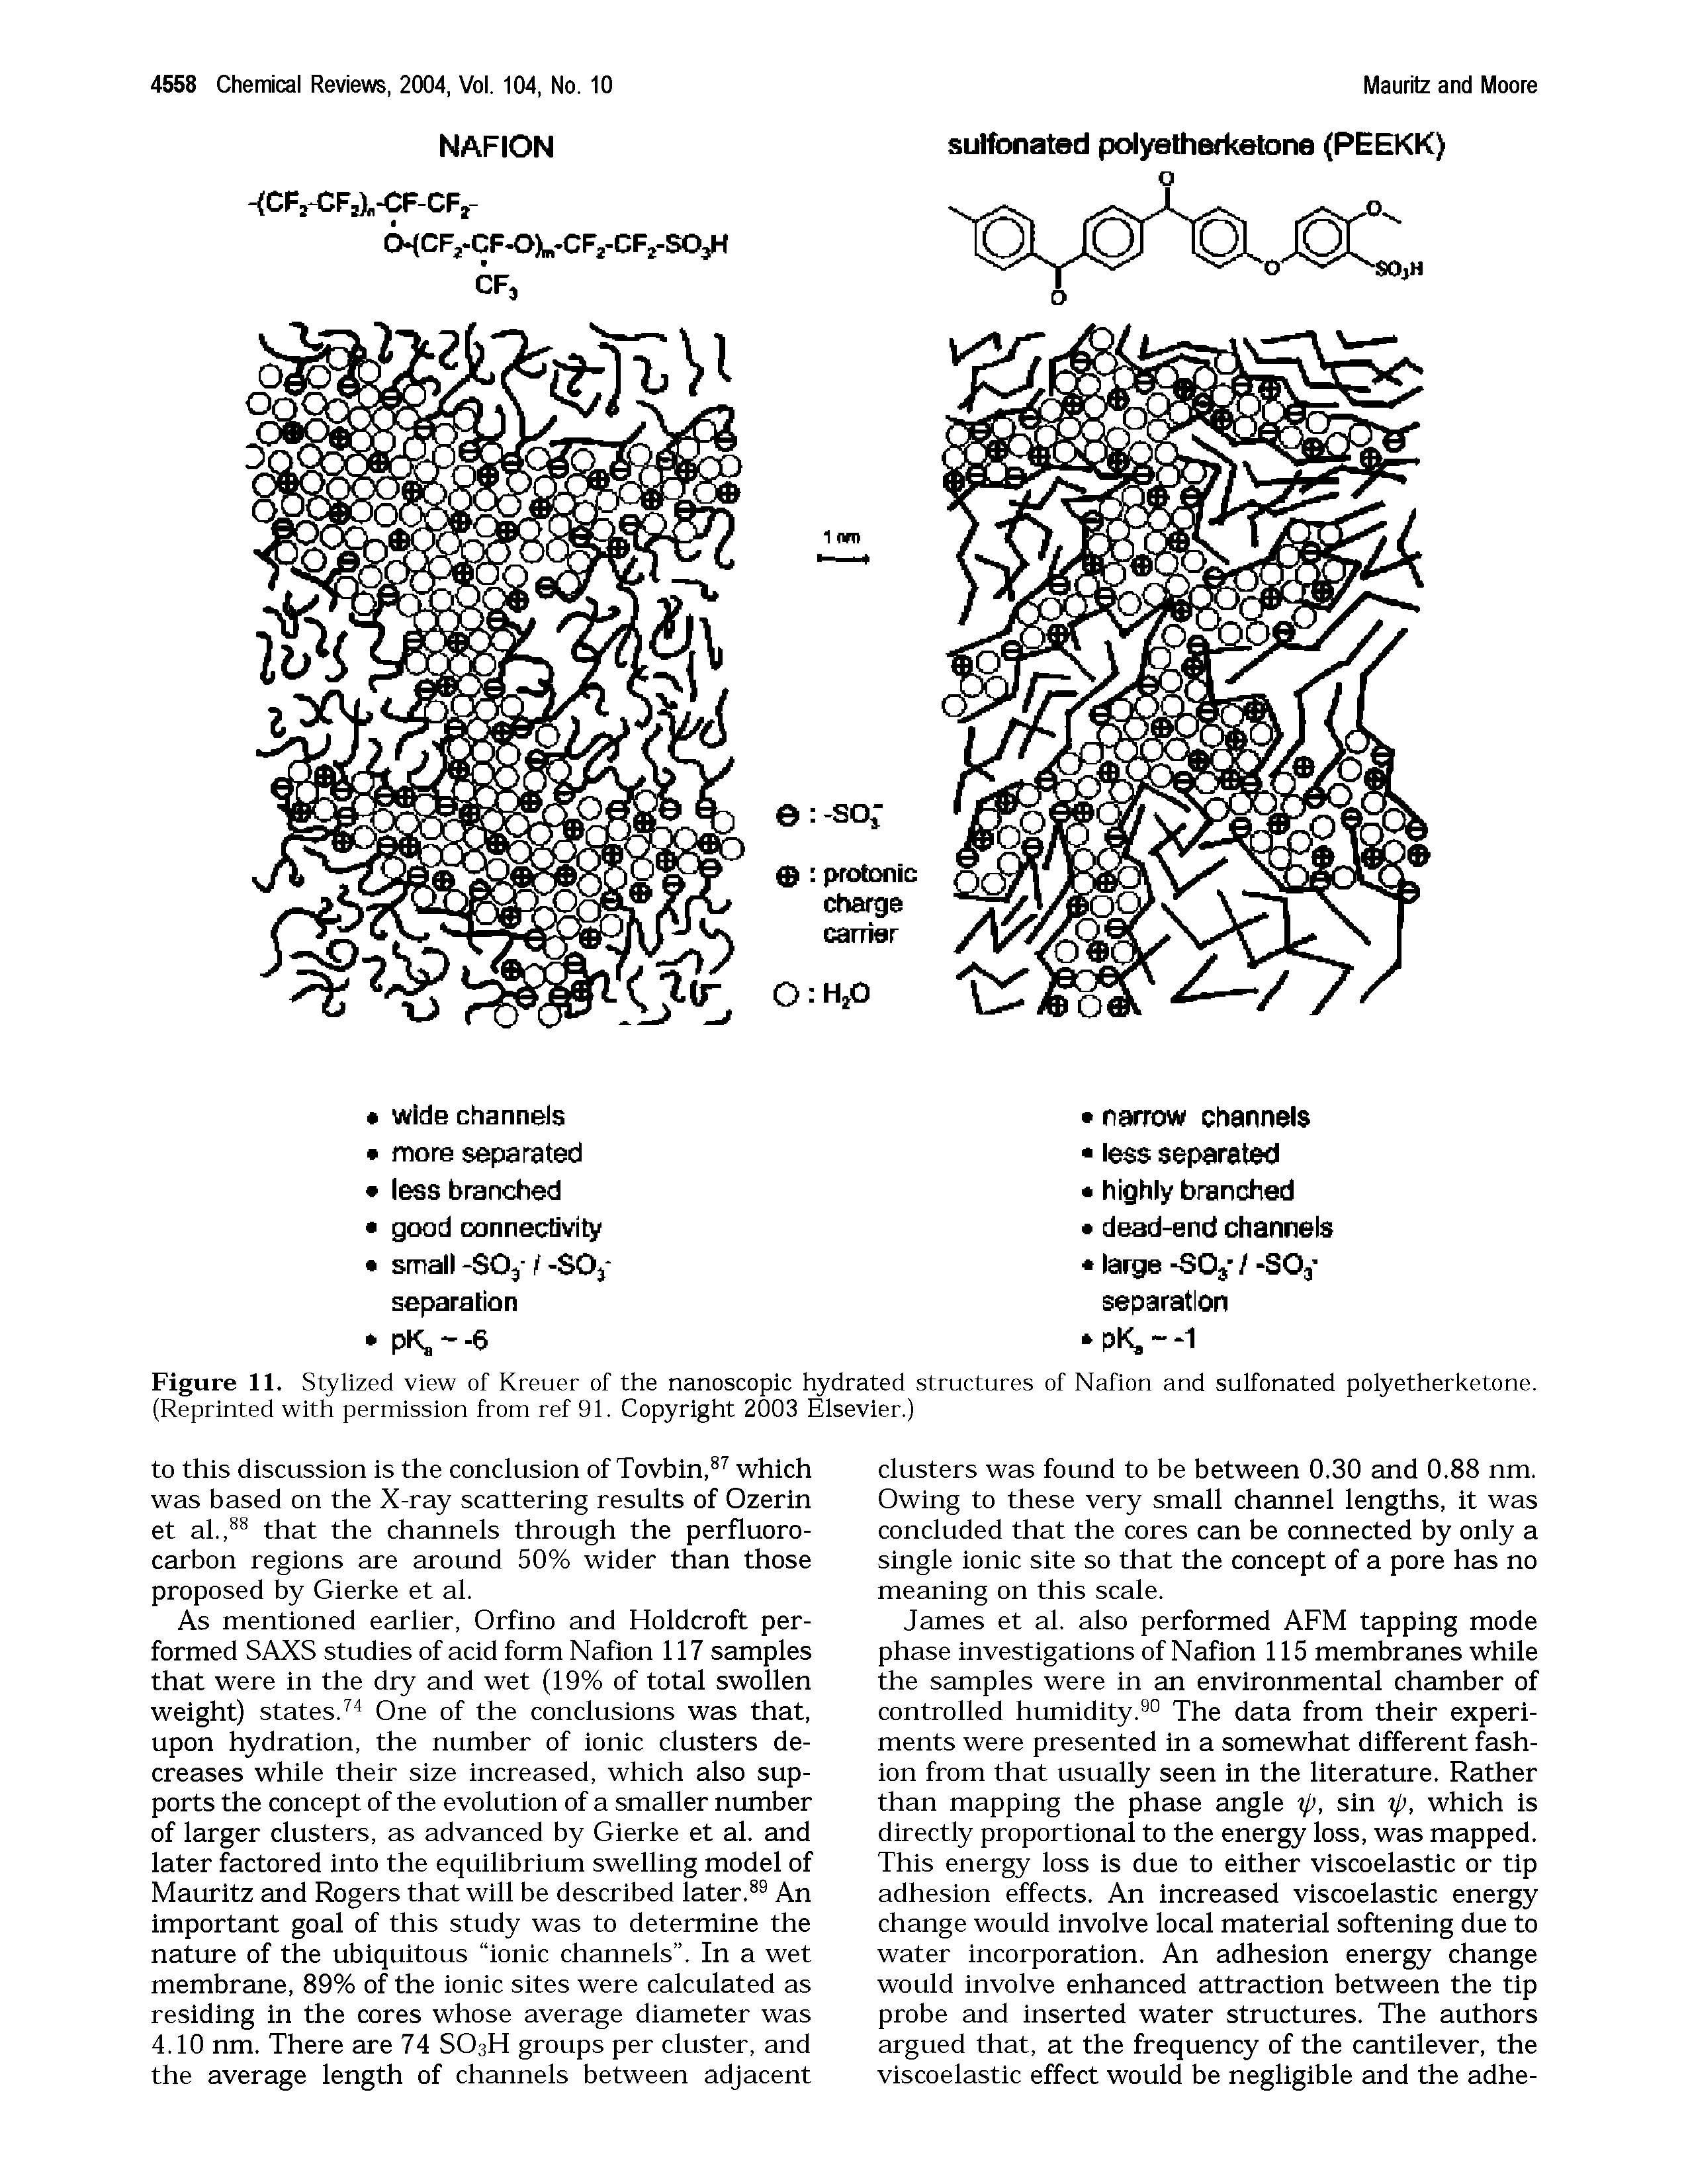 Figure 11. Stylized view of Kreuer of the nanoscopic hydrated structures of Nafion and sulfonated polyetherketone. (Reprinted with permission from ref 91. Copyright 2003 Elsevier.)...